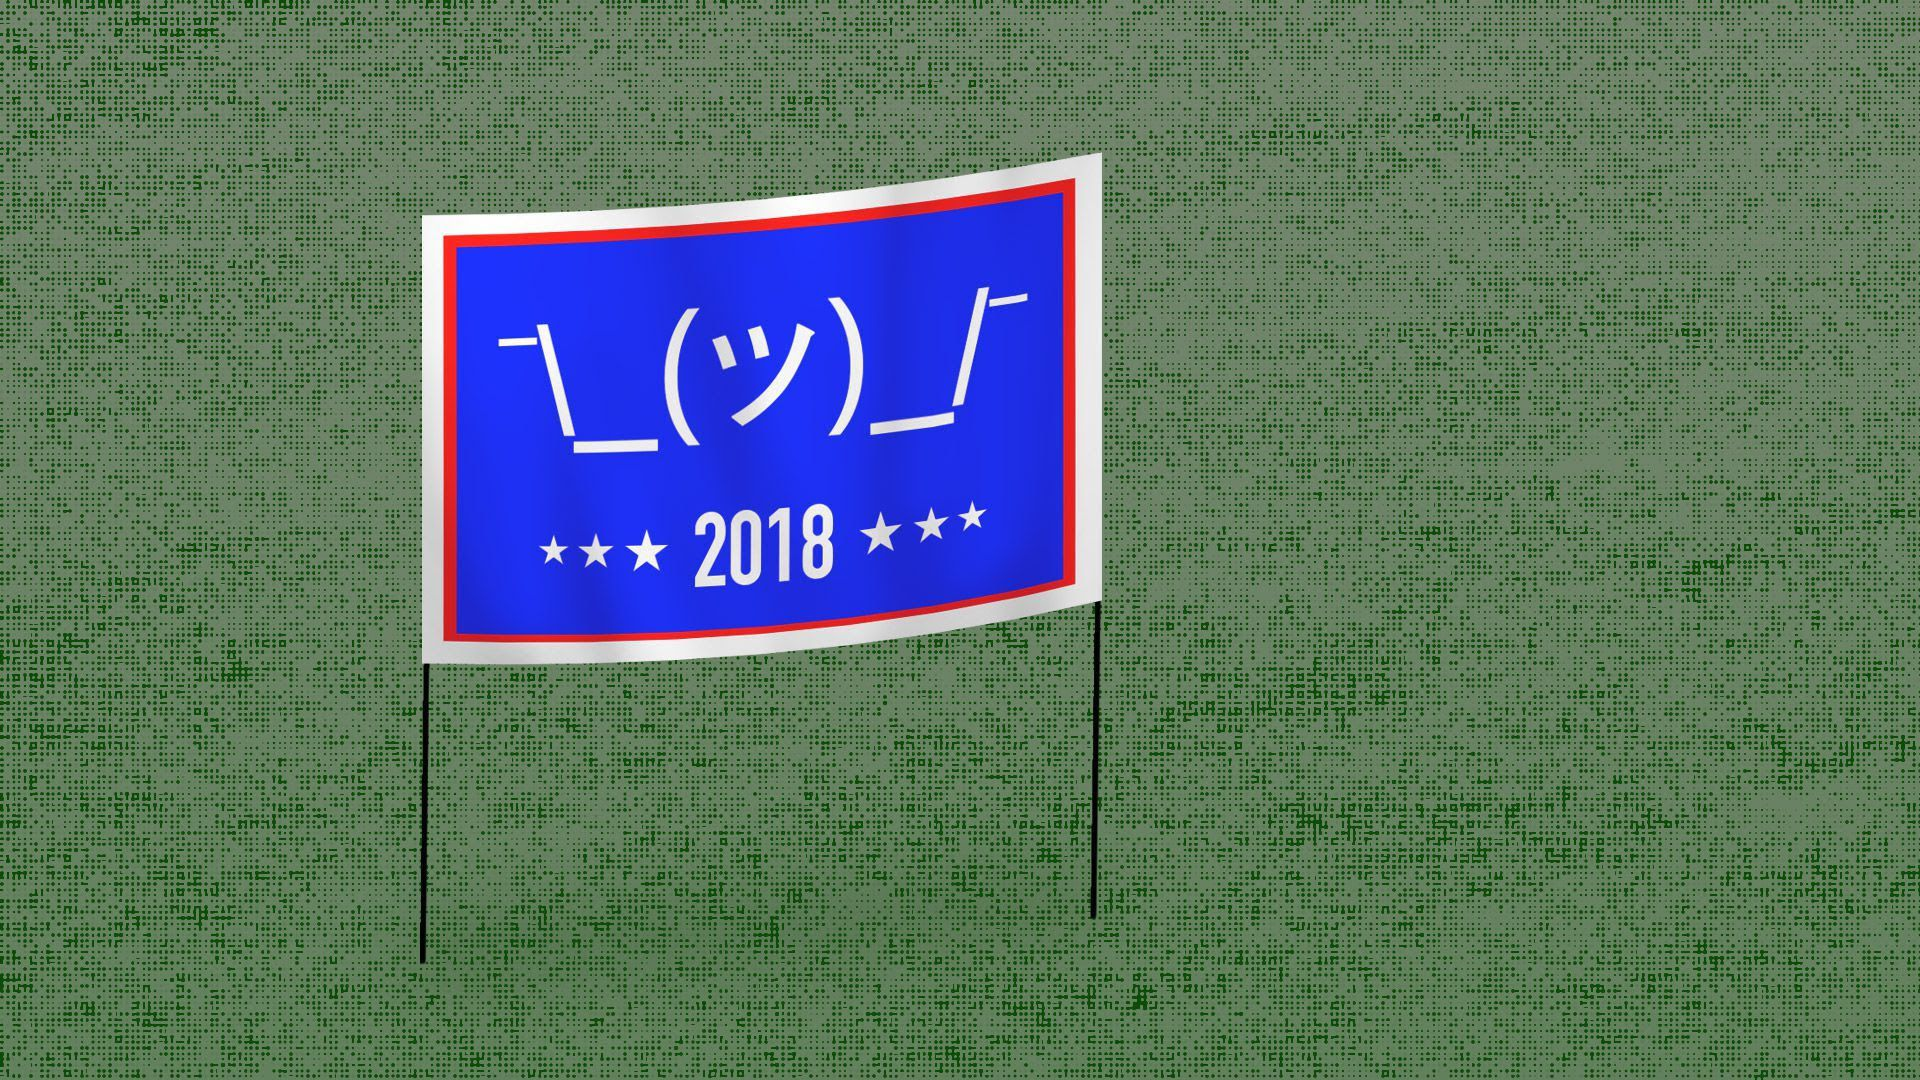 This shows a yard sign with a shruggie emoticon and 2018